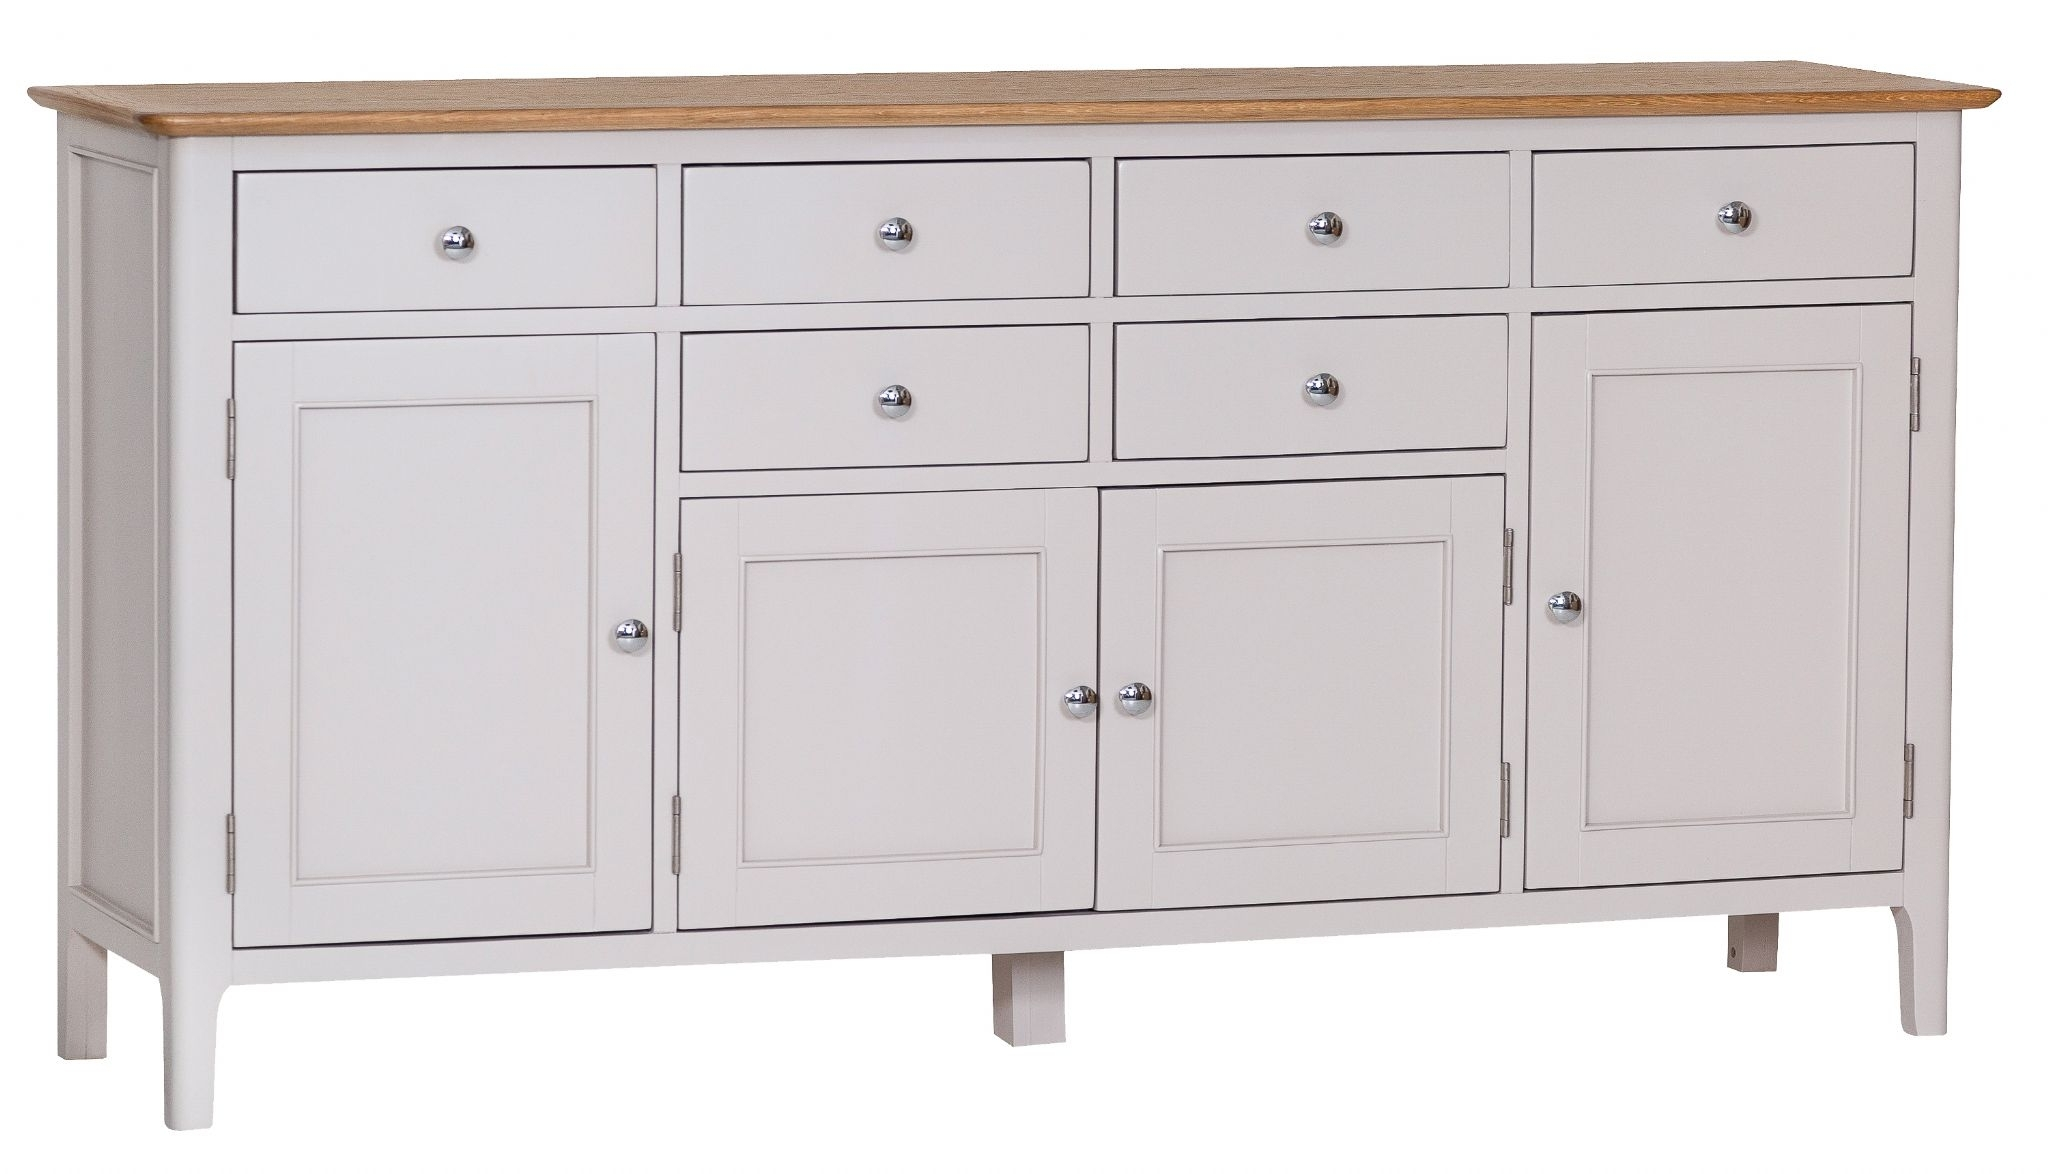 Newhaven Oak 4 Door Sideboard | Blueberry Square Within Current 4 Door Wood Squares Sideboards (#14 of 20)